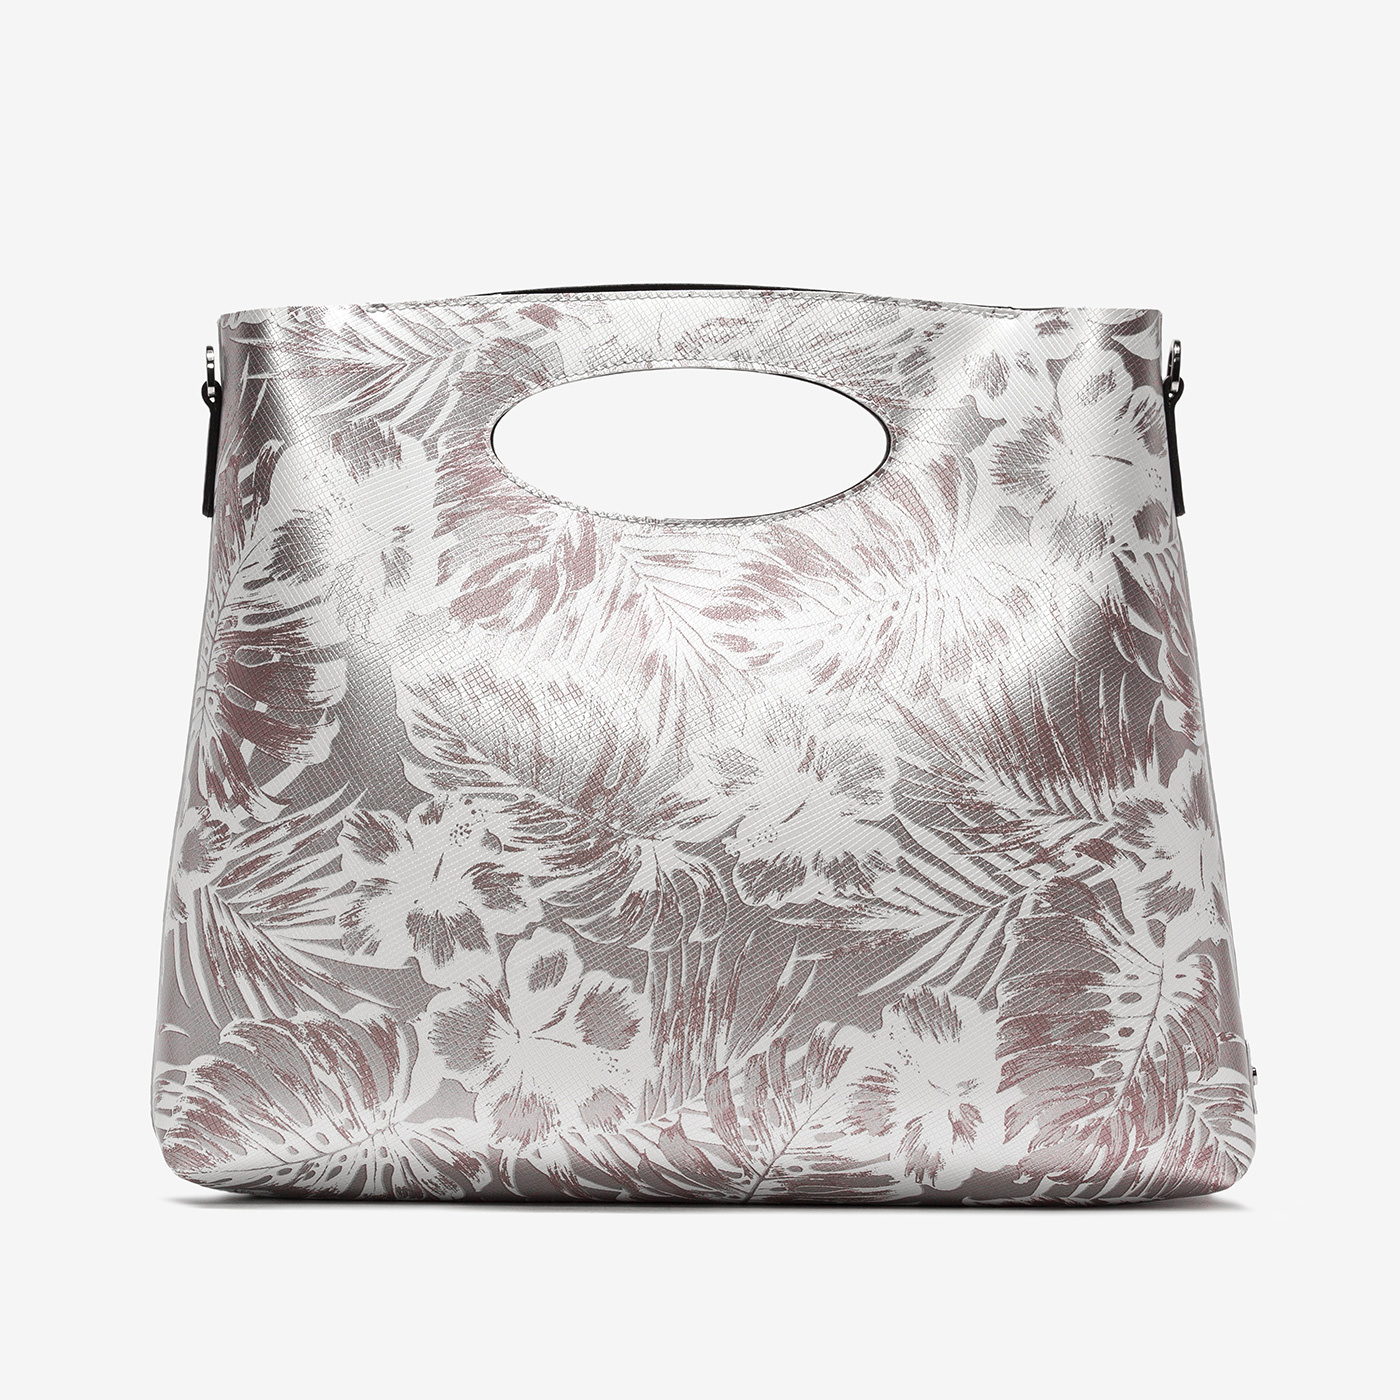 GUM: SHOPPING BAG WITH HAWAII PRINT